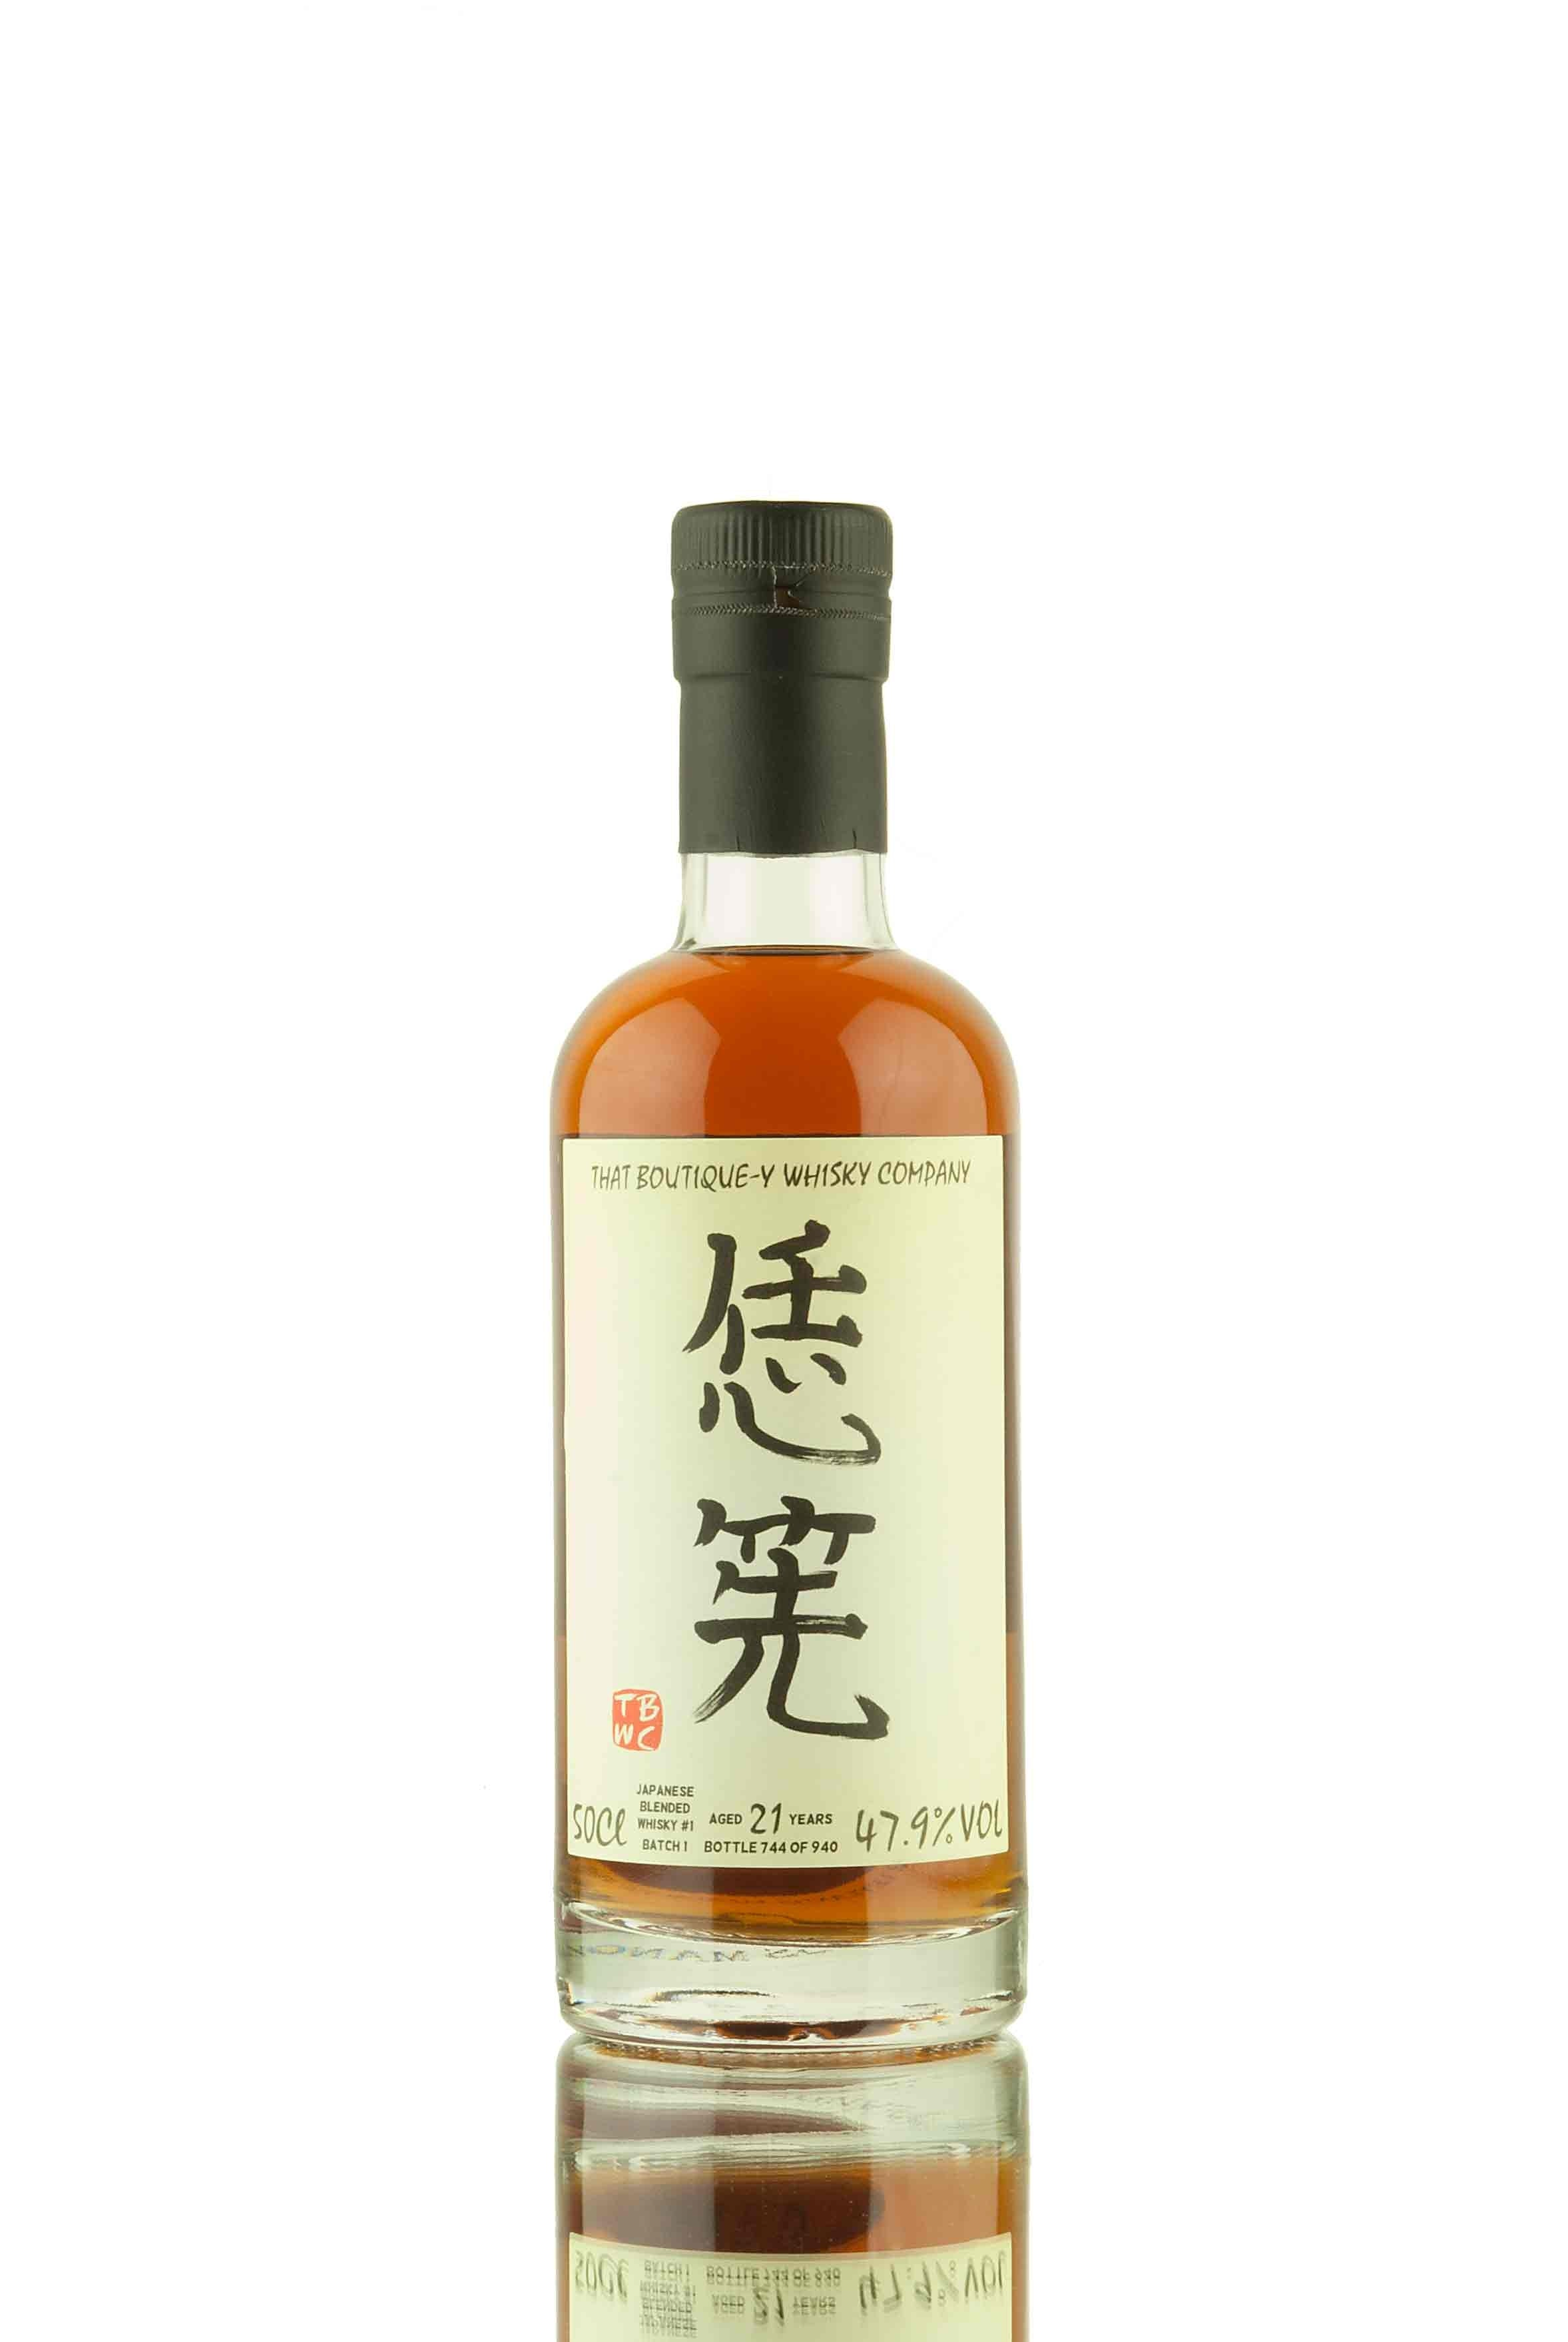 Japanese Blended Whisky #1 21 Year Old | TBWC